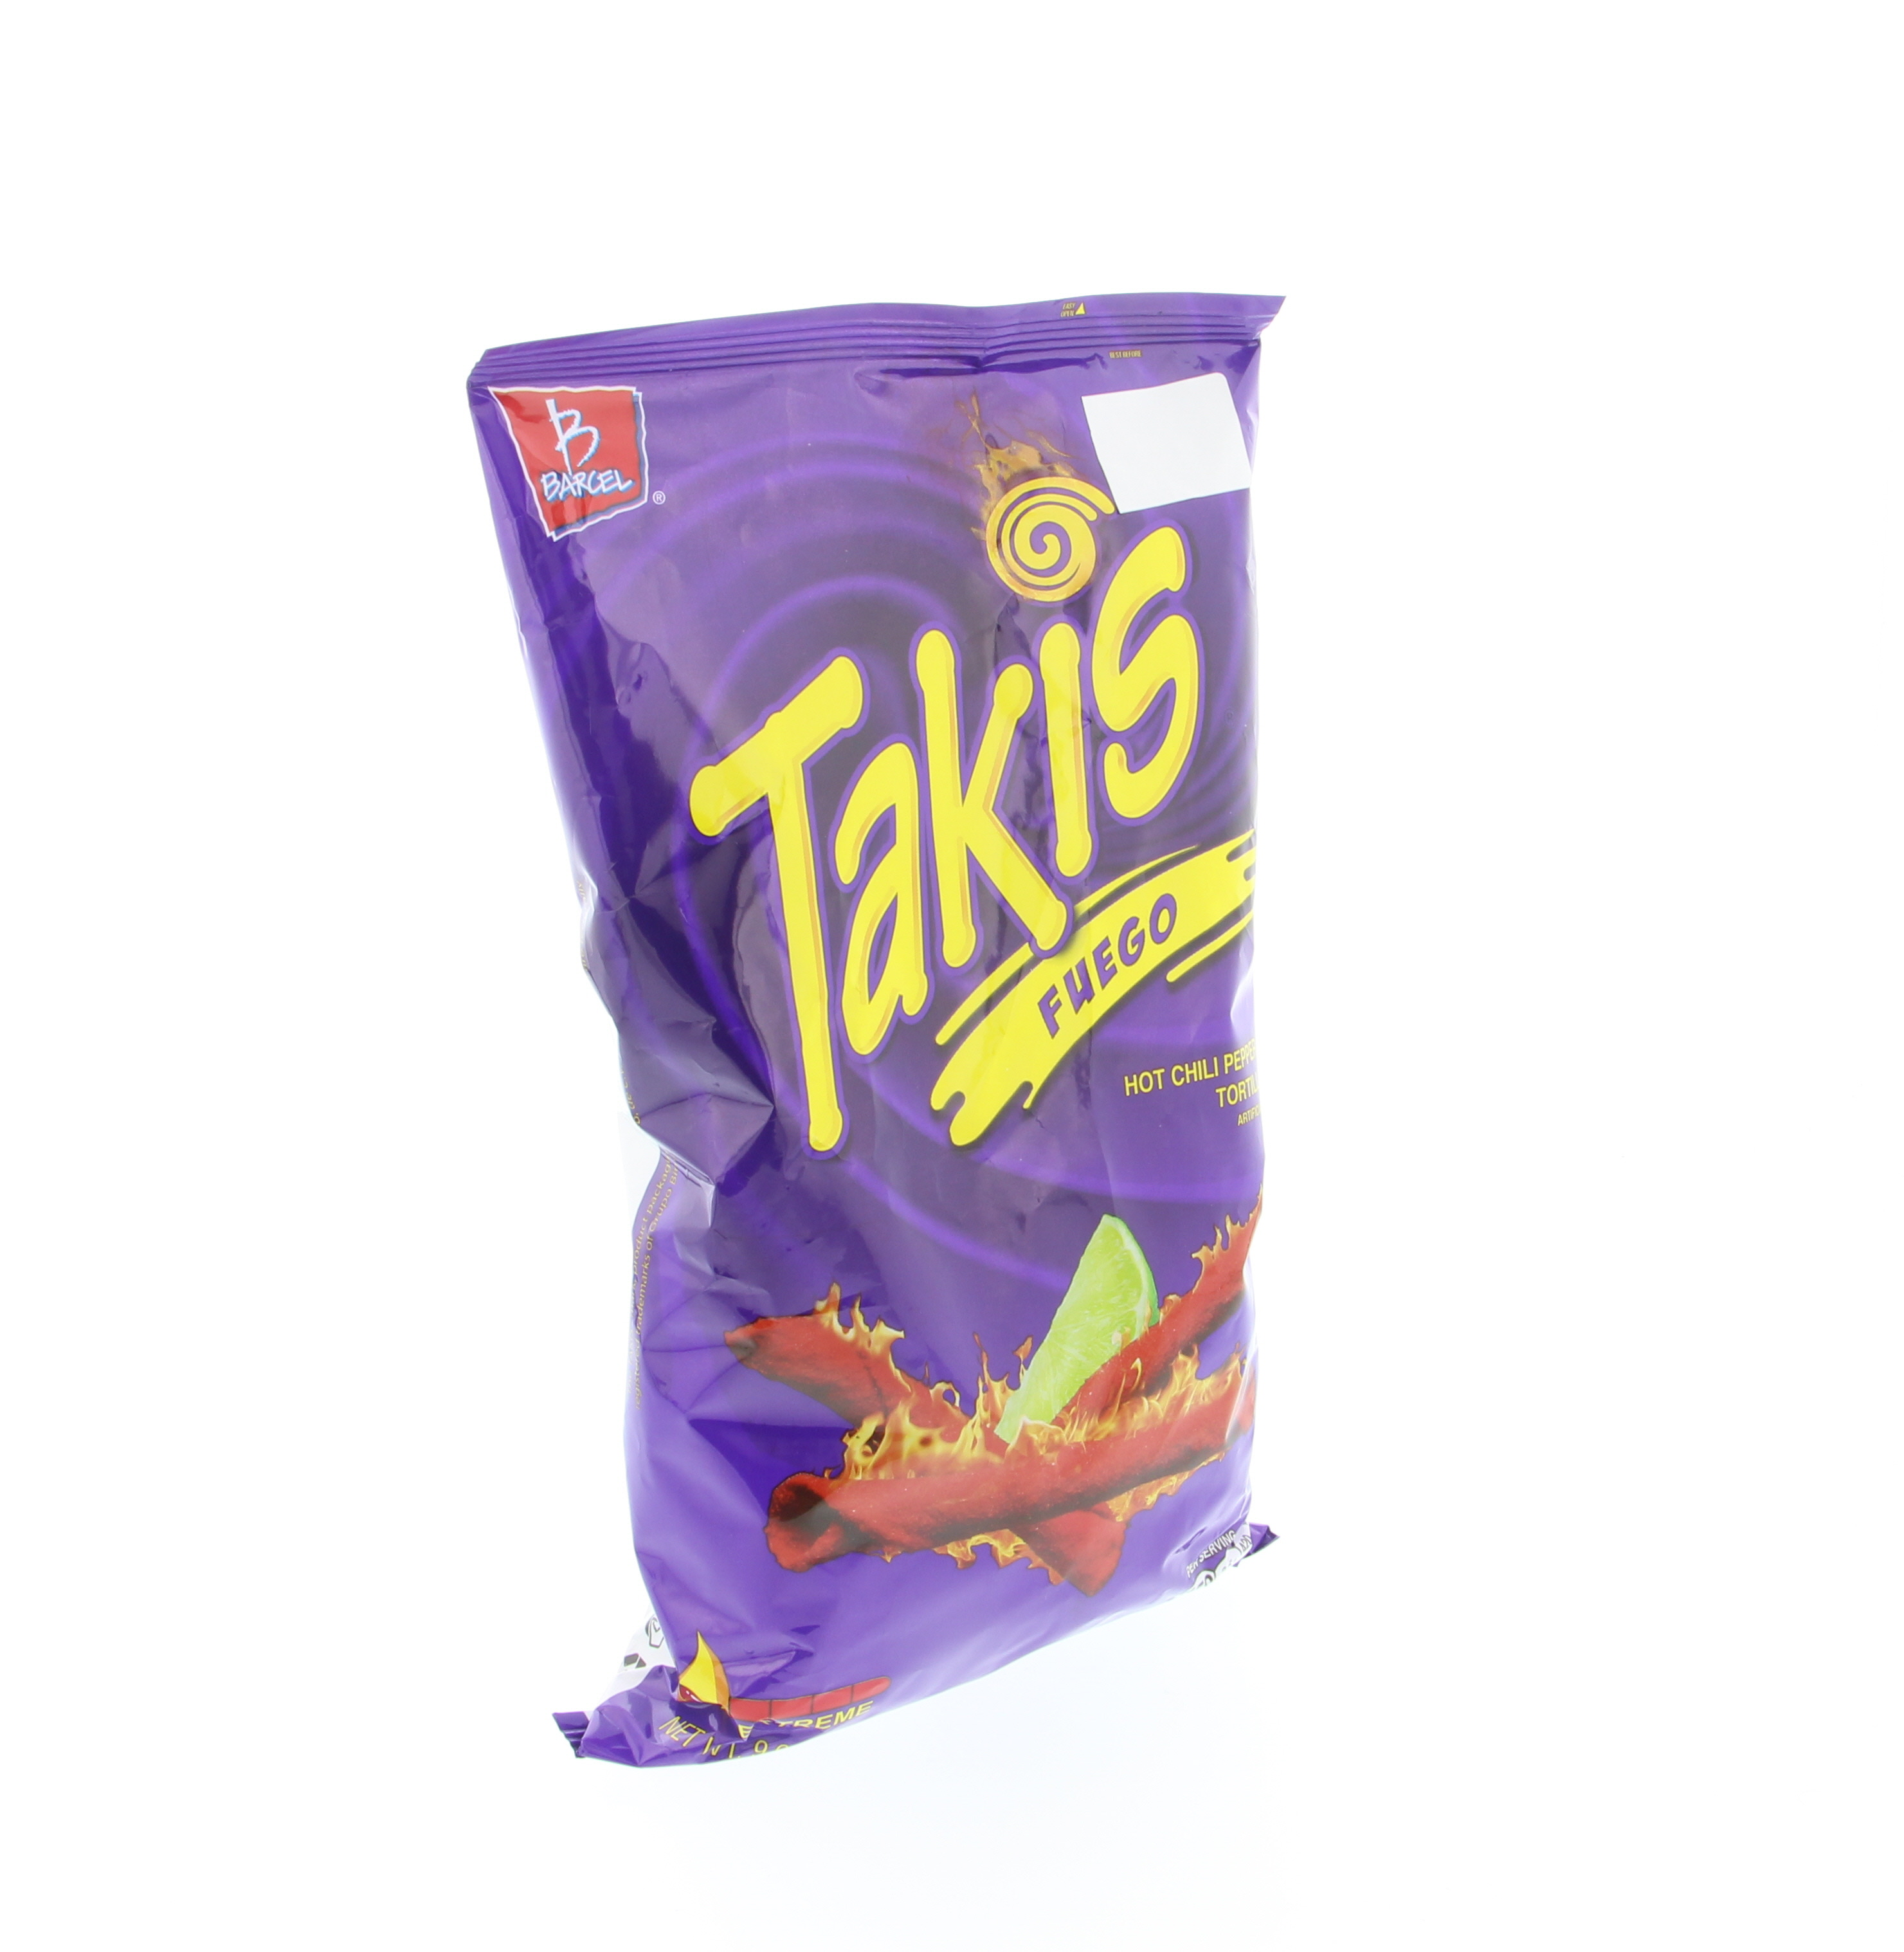 Takis Tortilla Chips Hot Chili Pepper And Lime Chile Y Limon 99 Bott Funko Pop Kc The Incredibles Elastigirl Oz